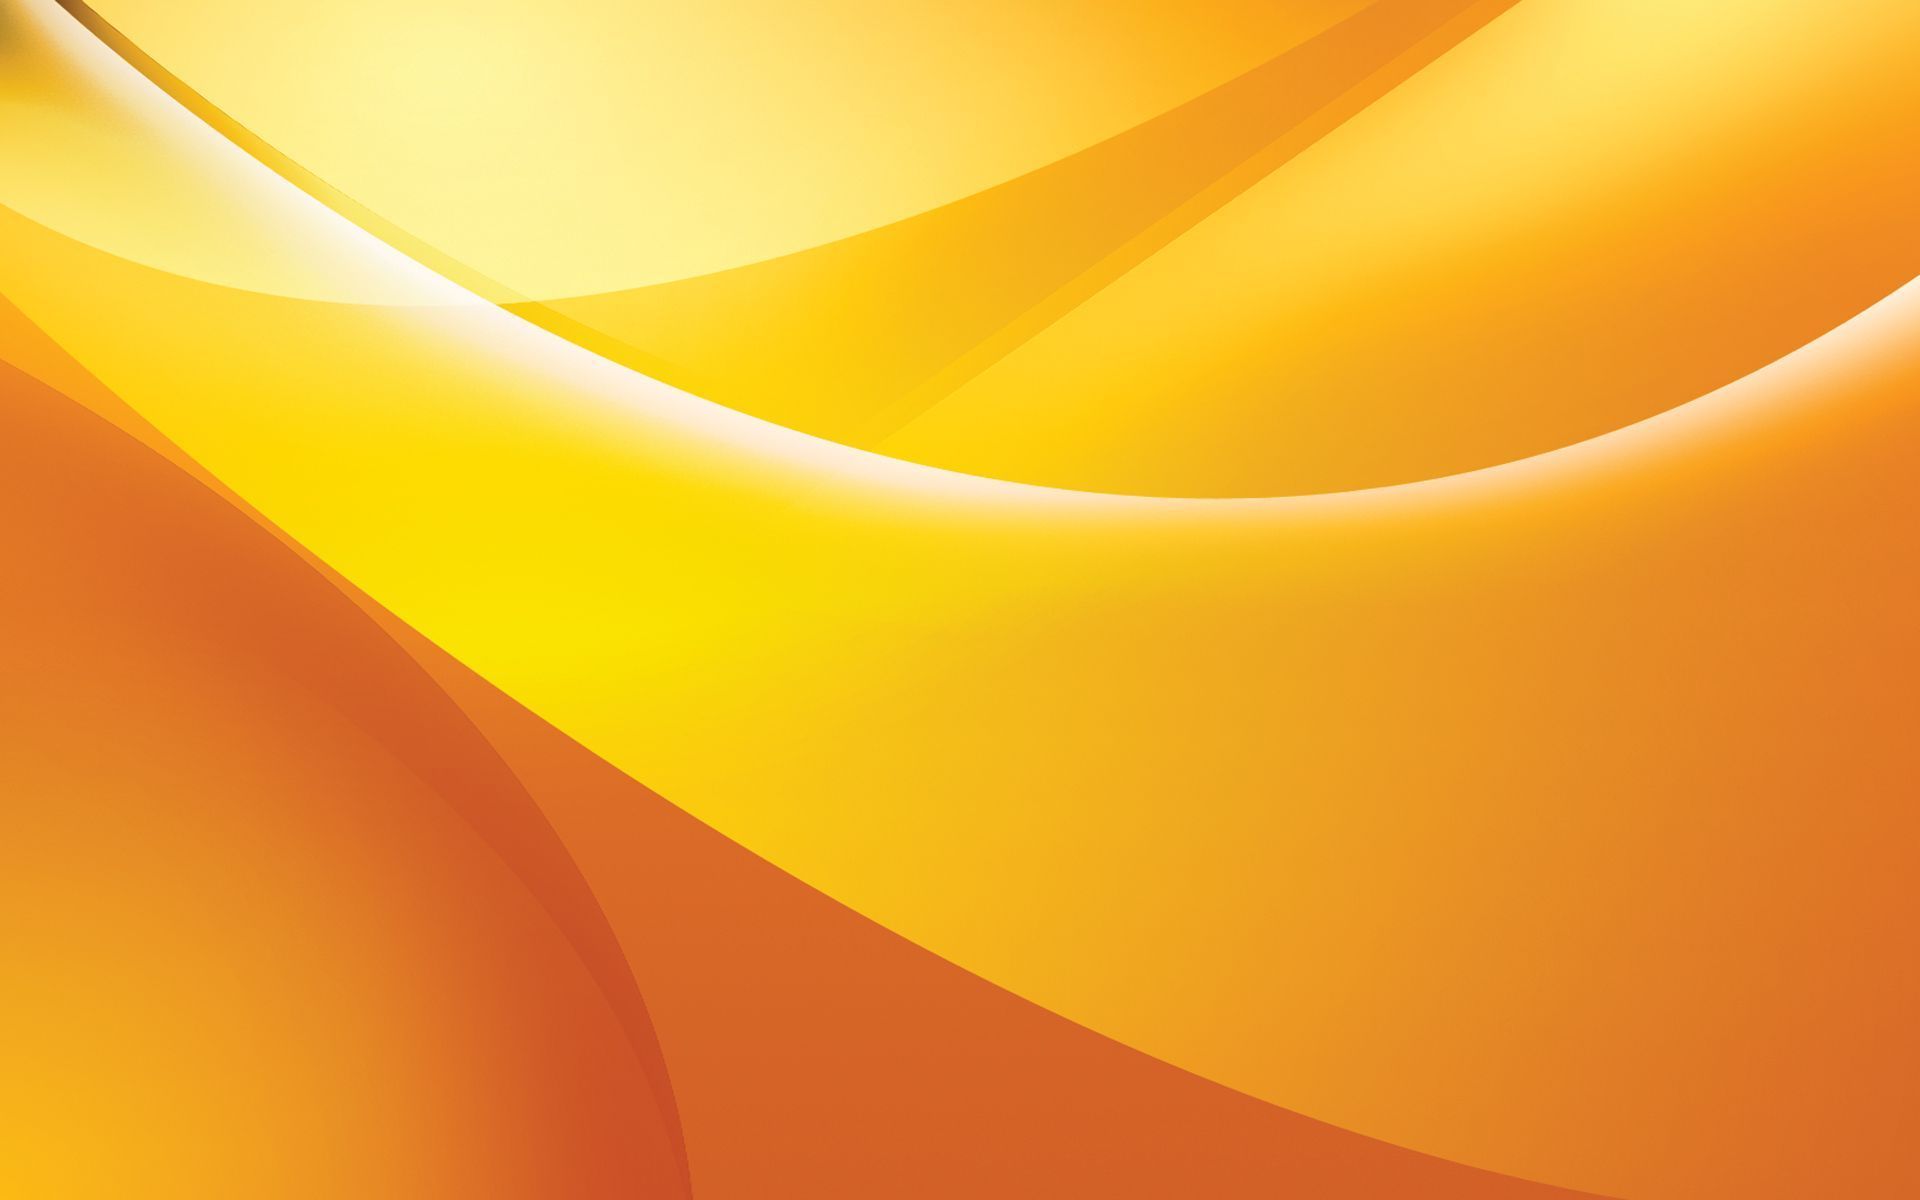 Awesome Abstract Yellow Orange Art Hd Wallpapers For Desktop